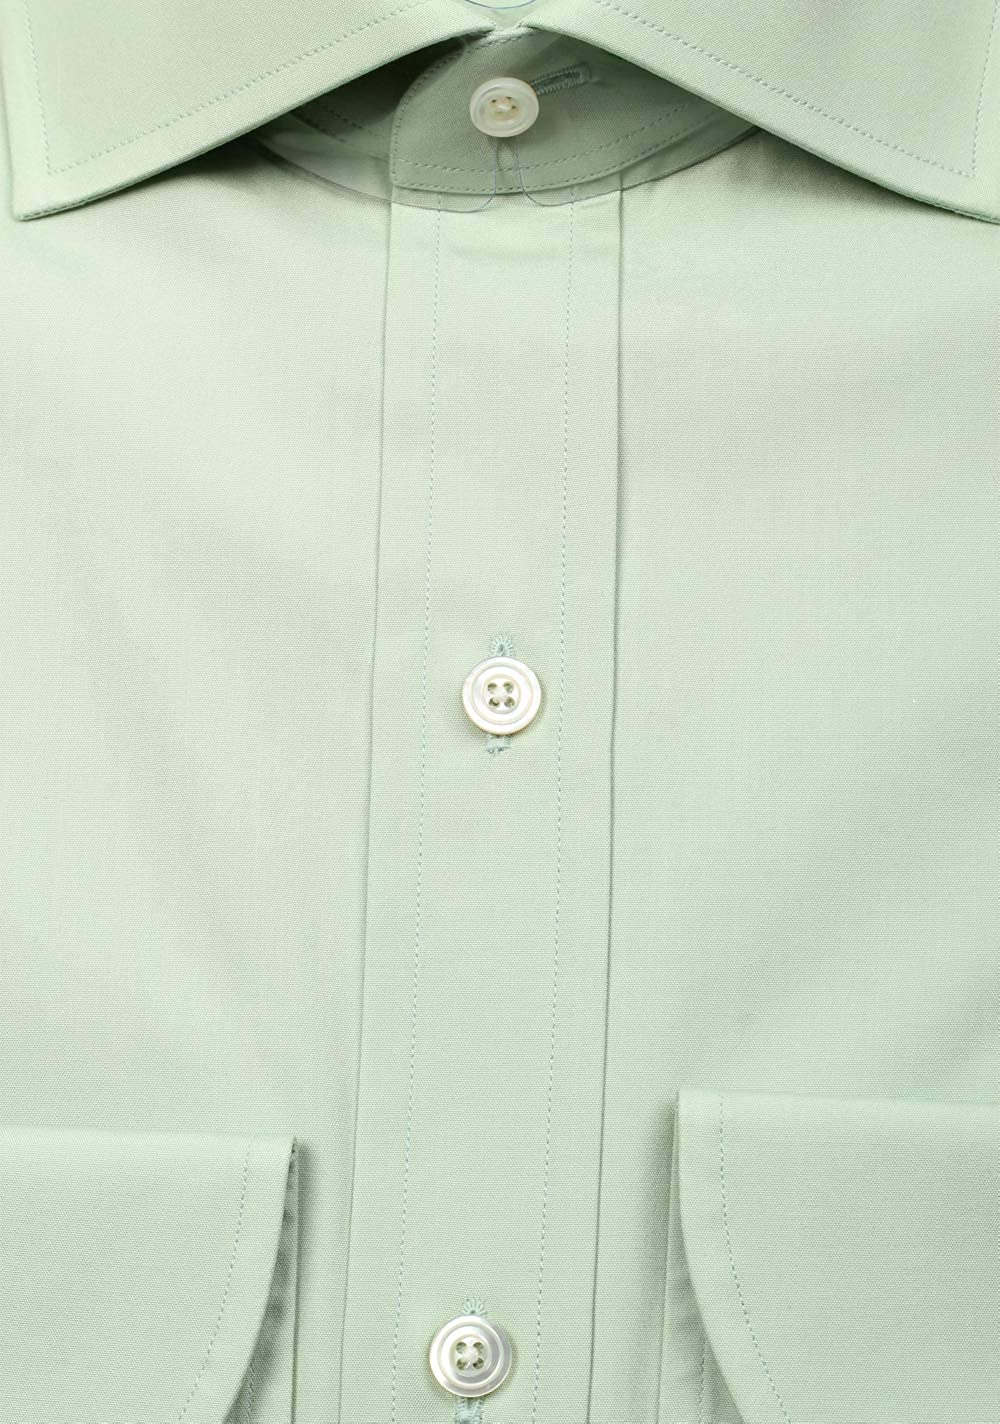 CL Tom Ford Solid Blue Green Shirt Size 44//17,5 U.S.